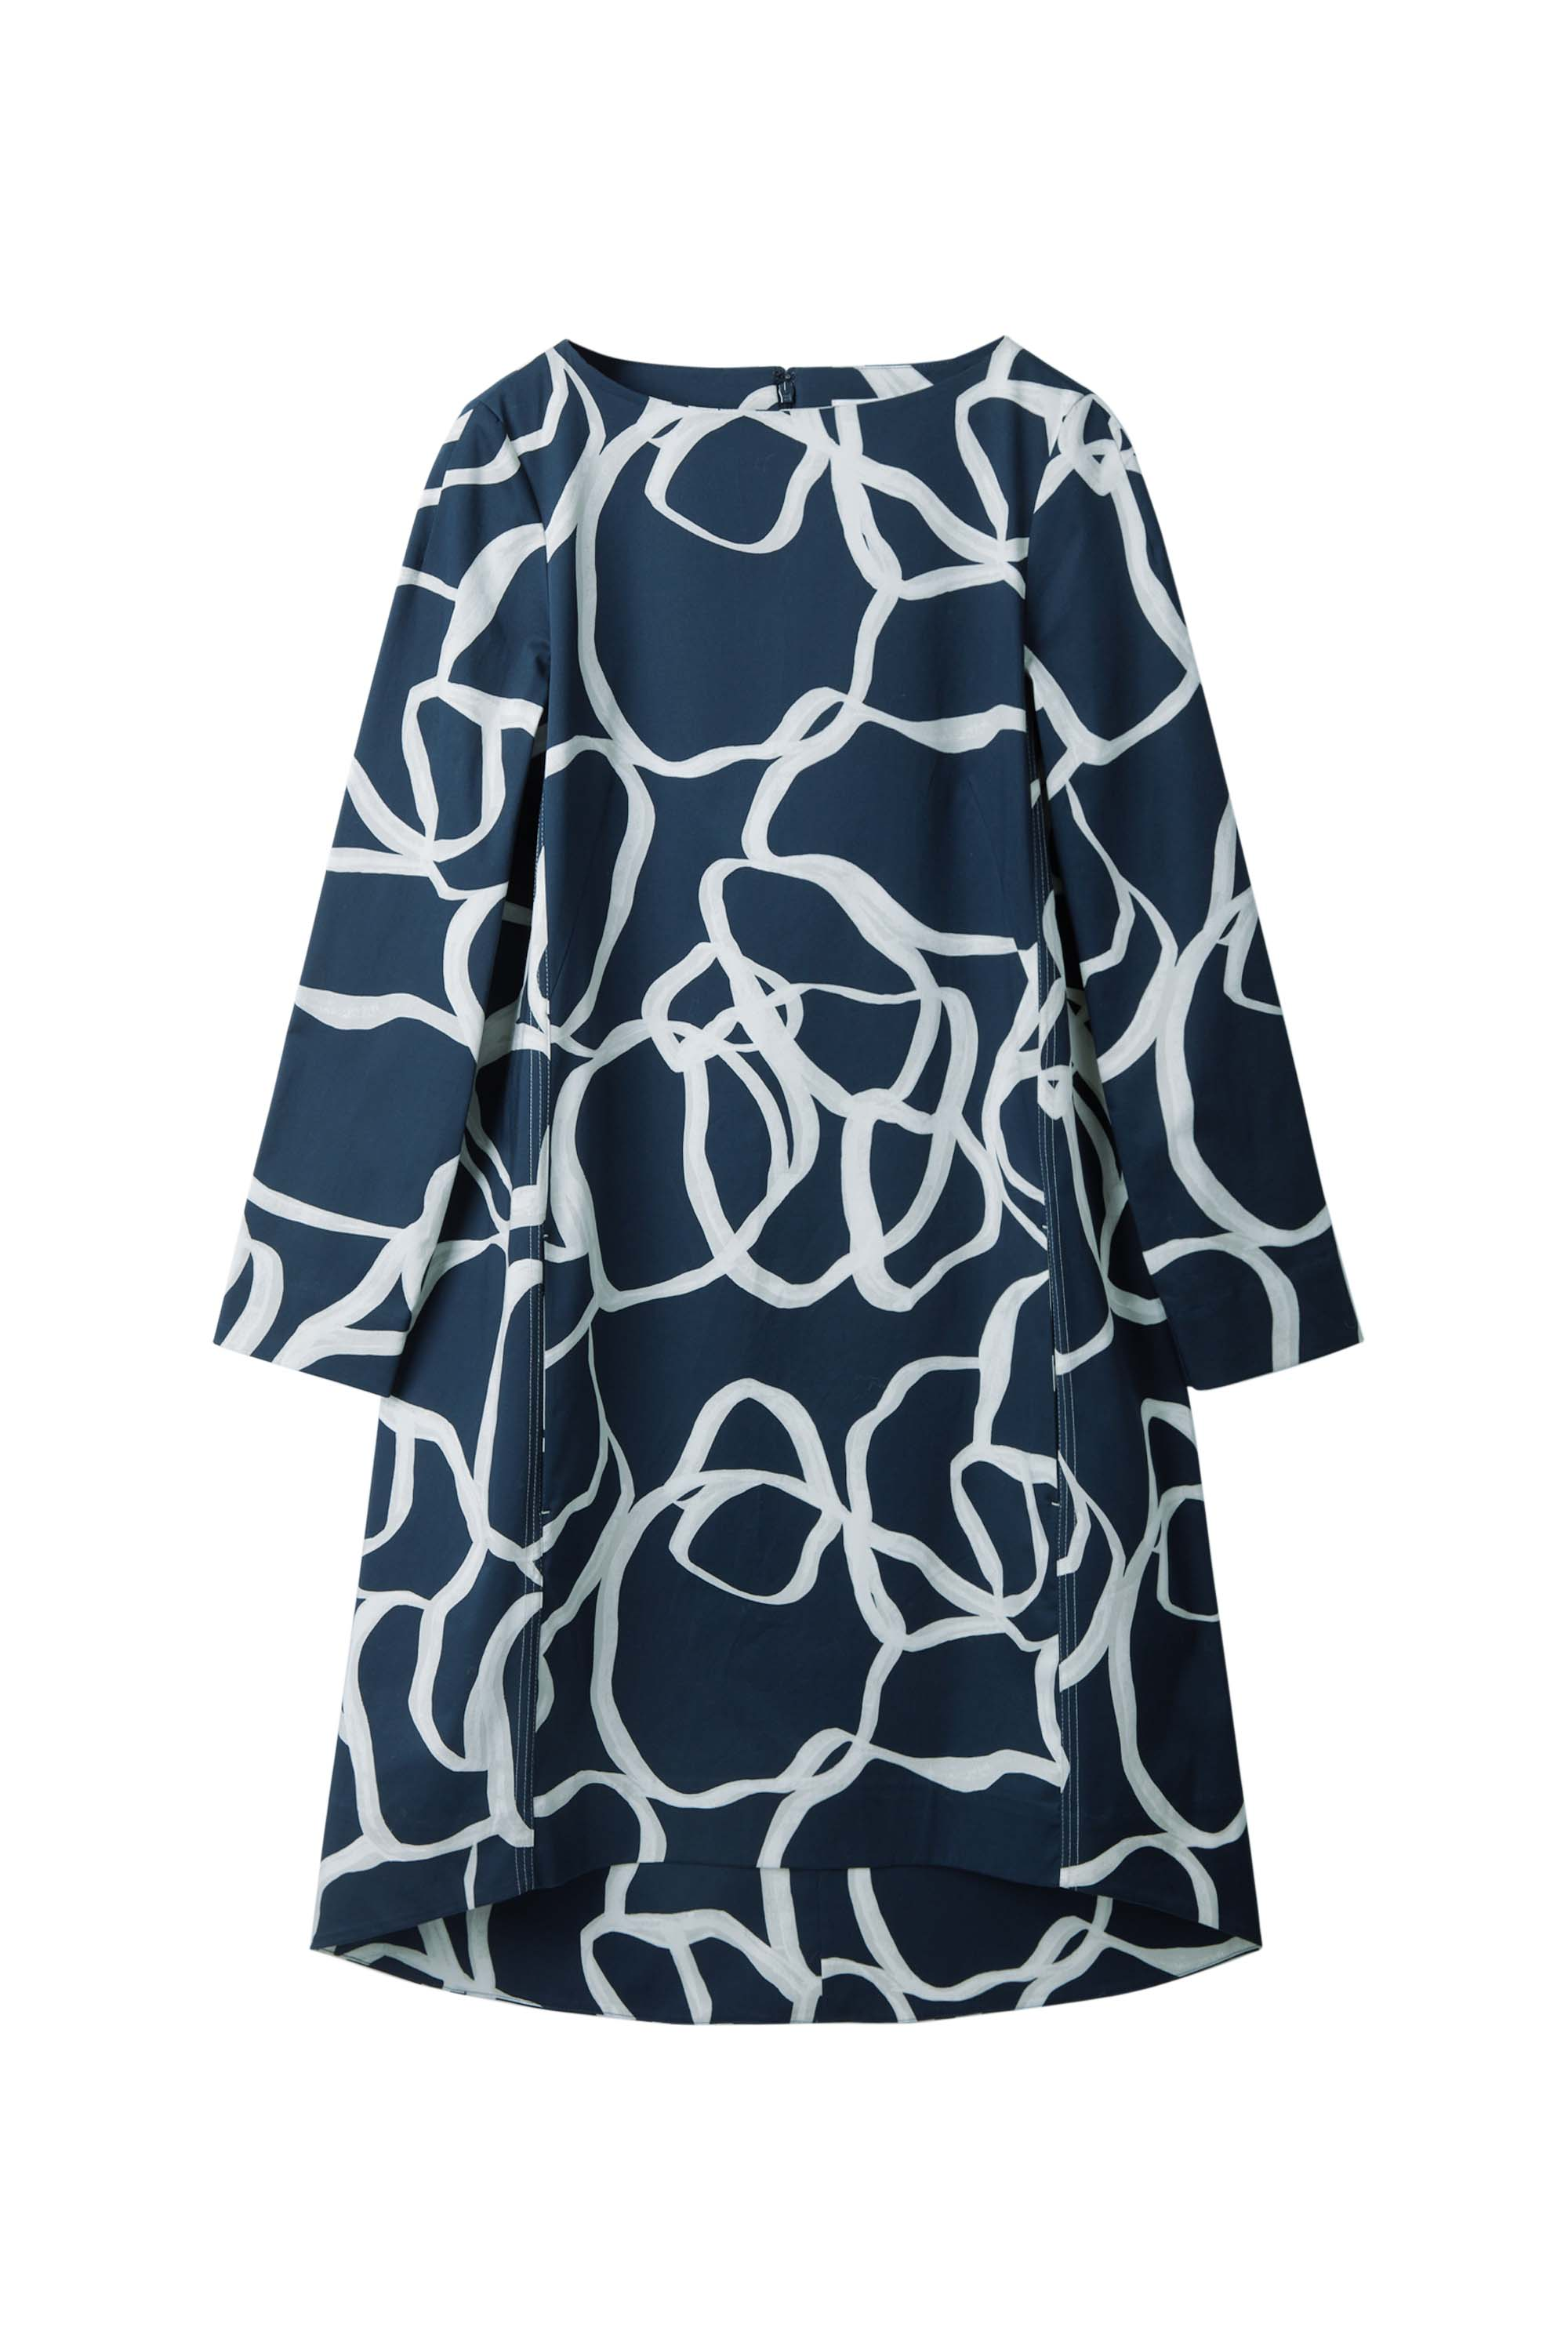 COS_Printed dress_AED 445